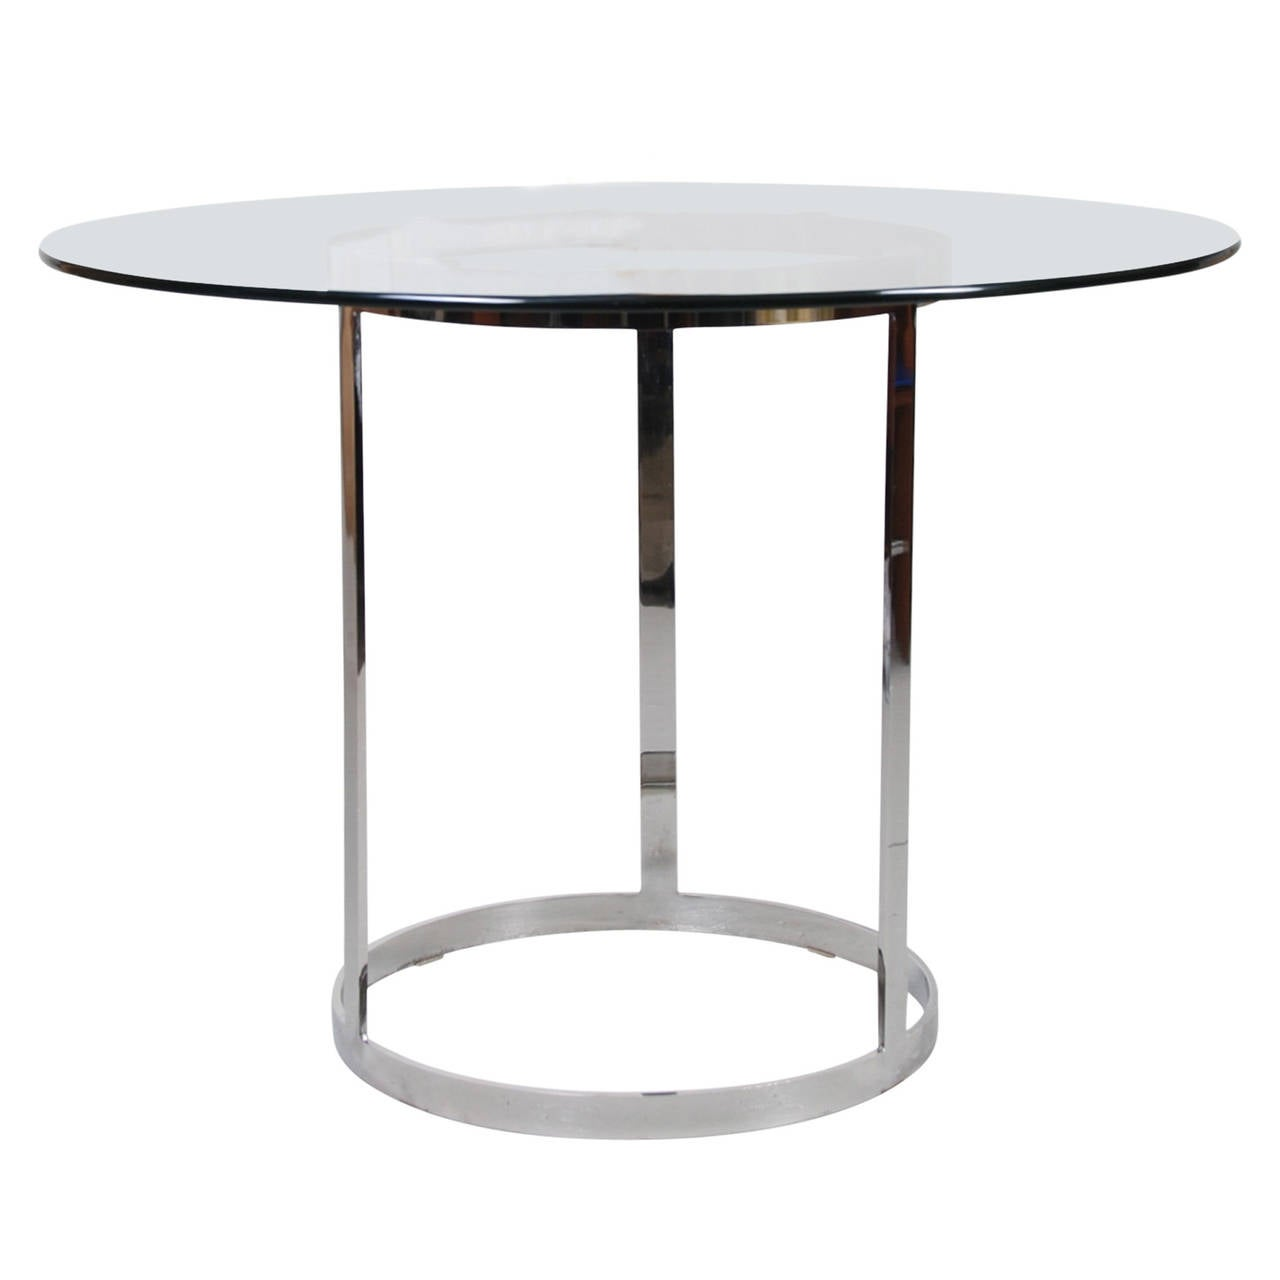 Milo baughman round glass and chrome dining table at 1stdibs for Round glass dining table